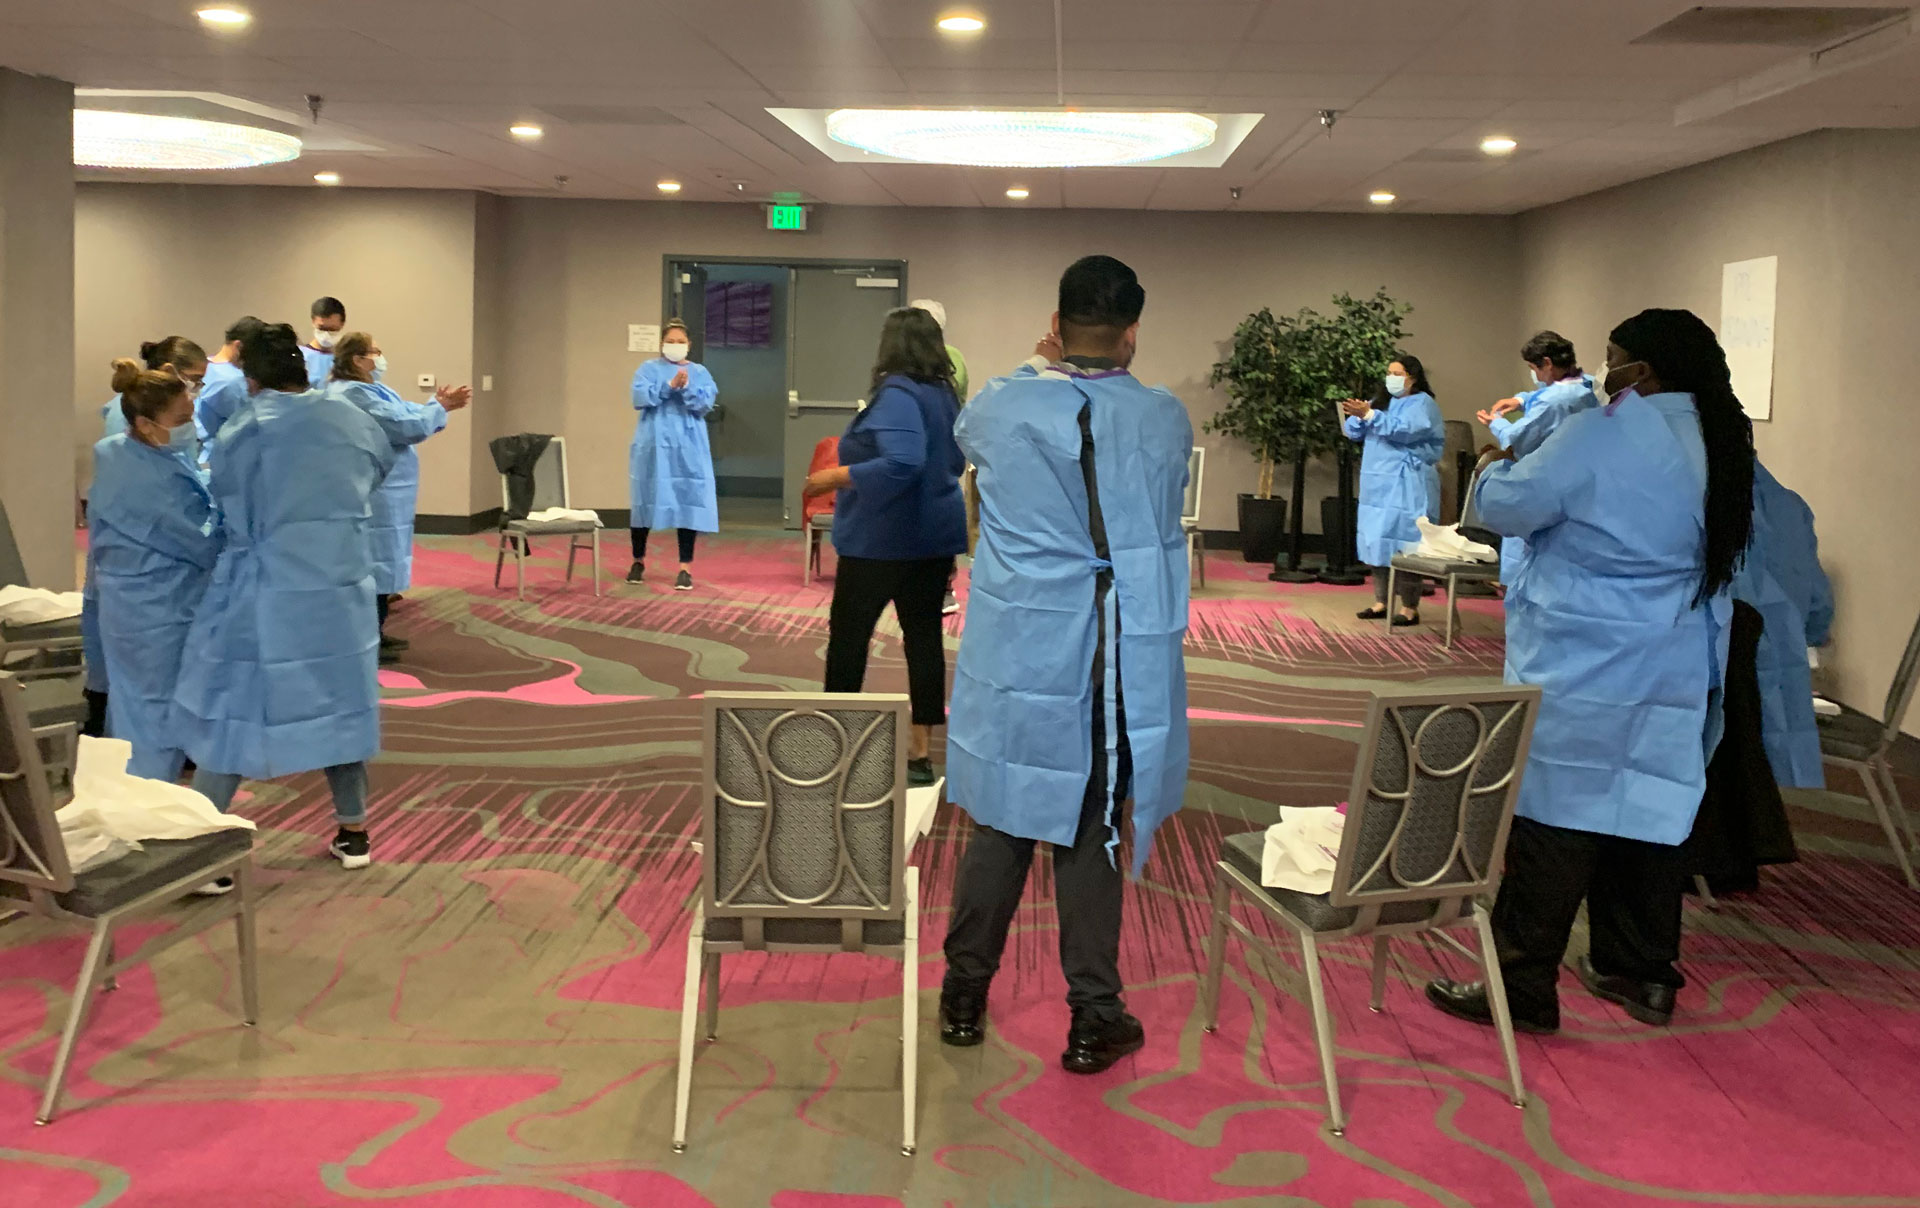 Alameda County public health staff take part in a training on how to use personal protective equipment while working with guests at the Radisson Hotel in Oakland in late March.